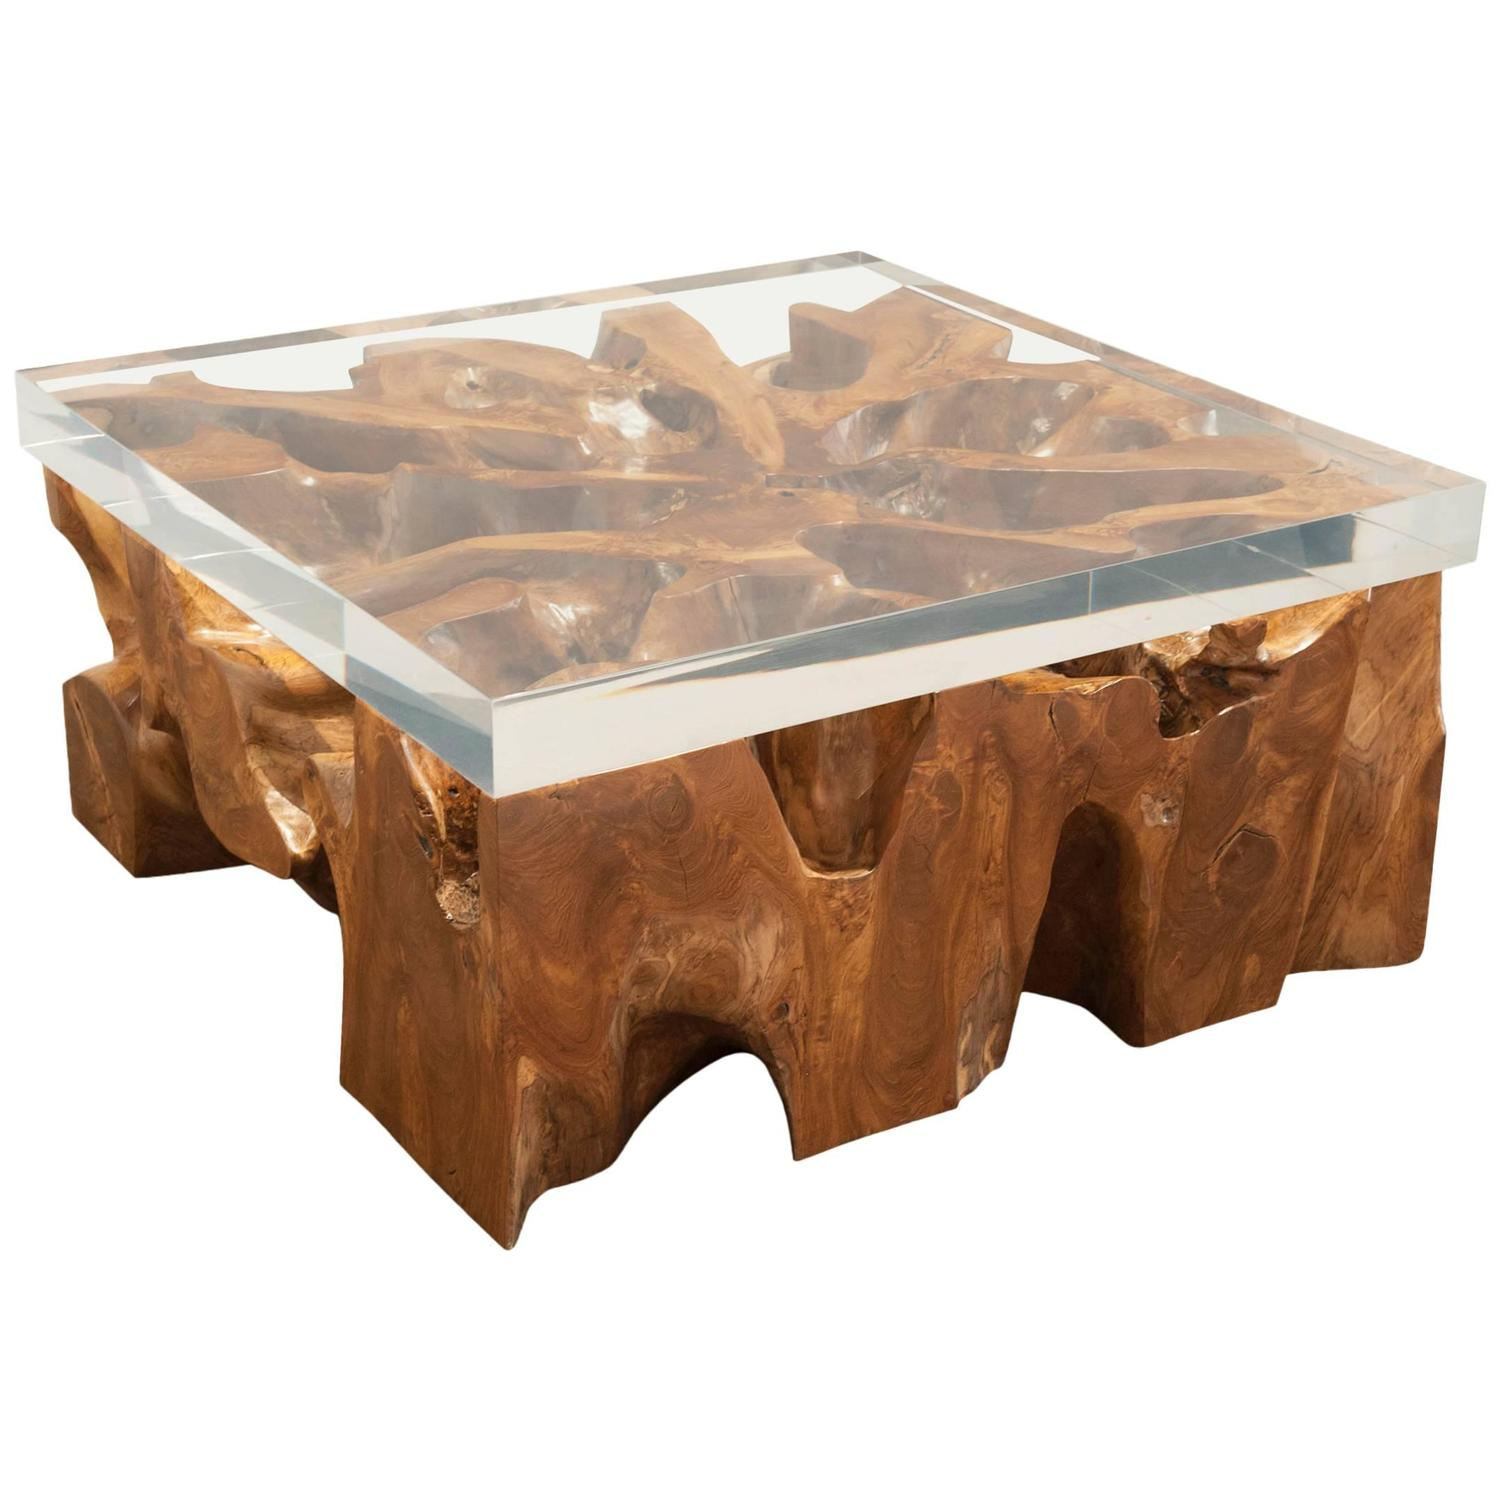 Large lucite and wood coffee table at 1stdibs for Large wooden coffee tables